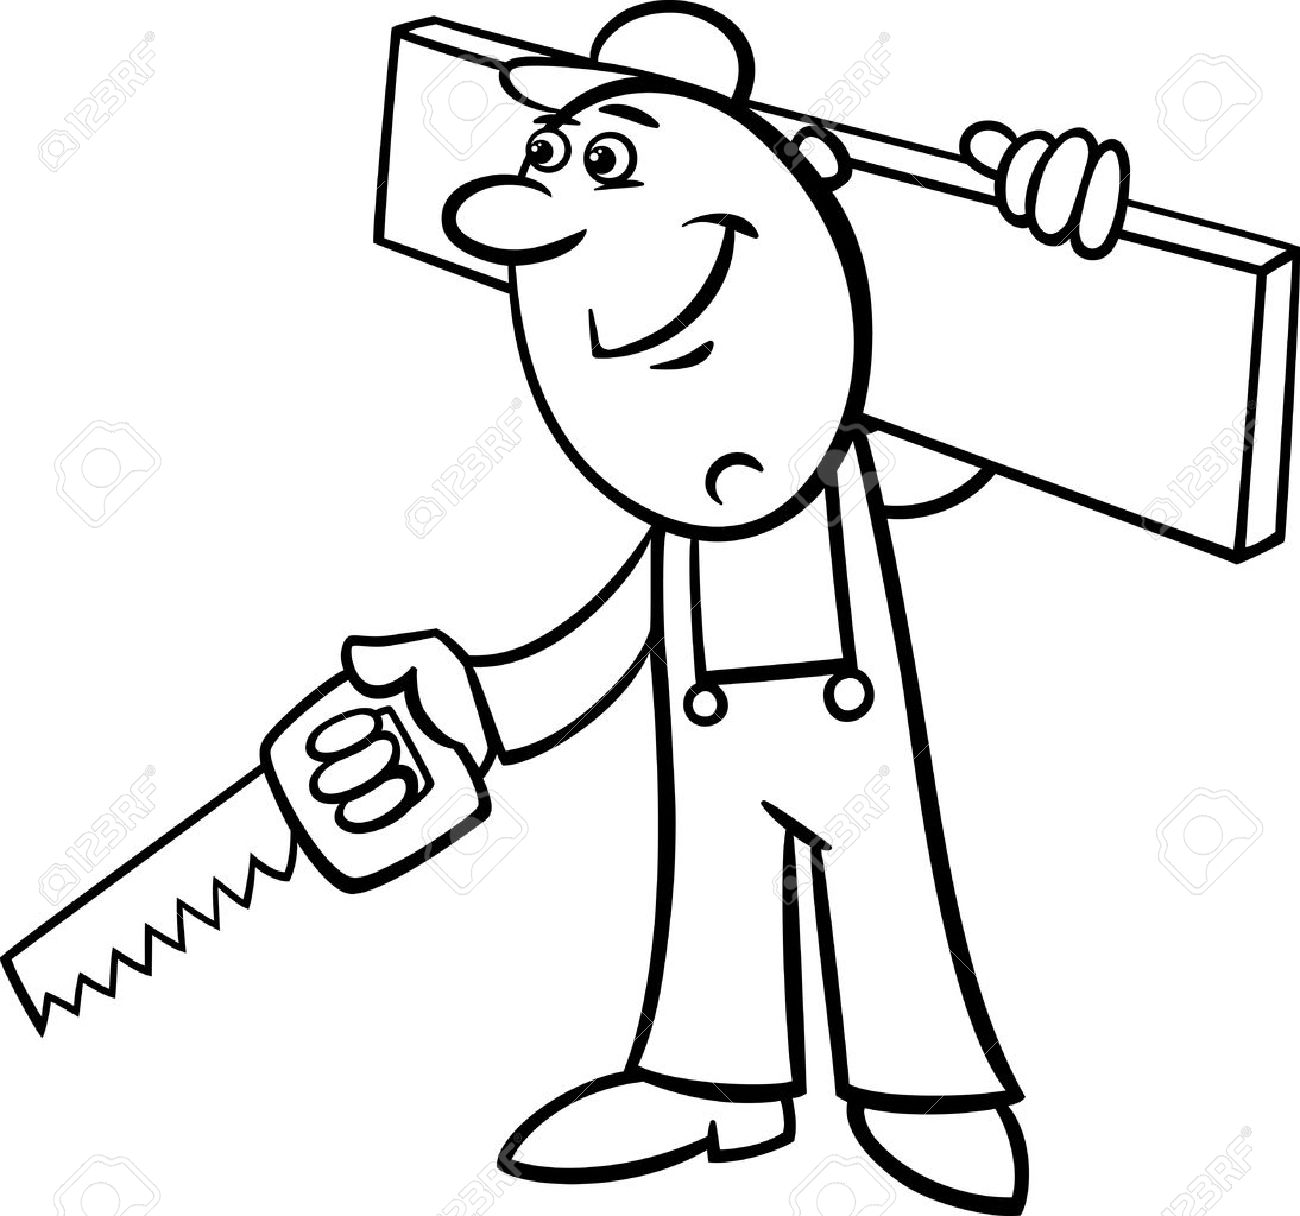 1300x1216 Black And White Cartoon Illustration Of Worker With Saw And Plank